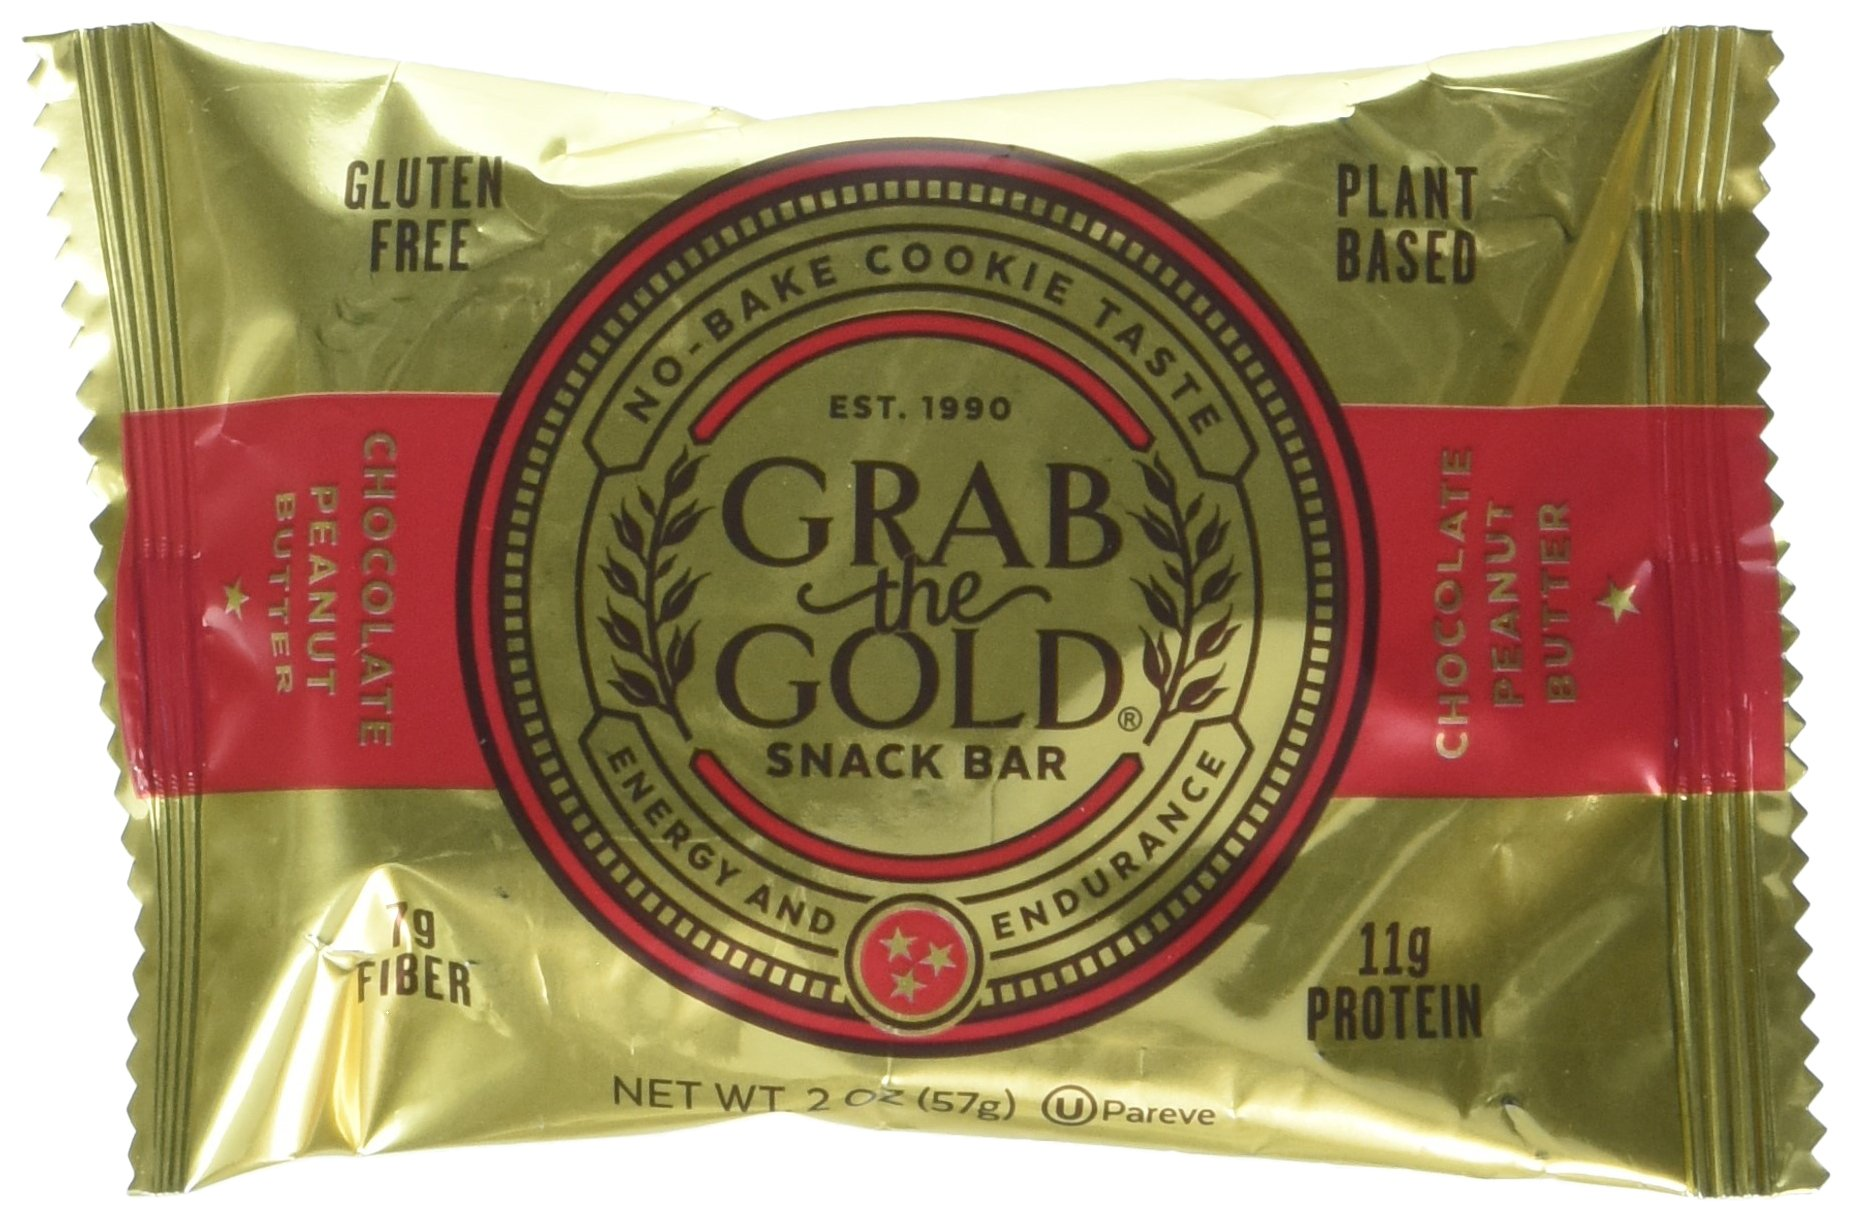 Grab The Gold Gluten Free Snack Bar, Chocolate Peanut Butter, 12 Count by Grab The Gold